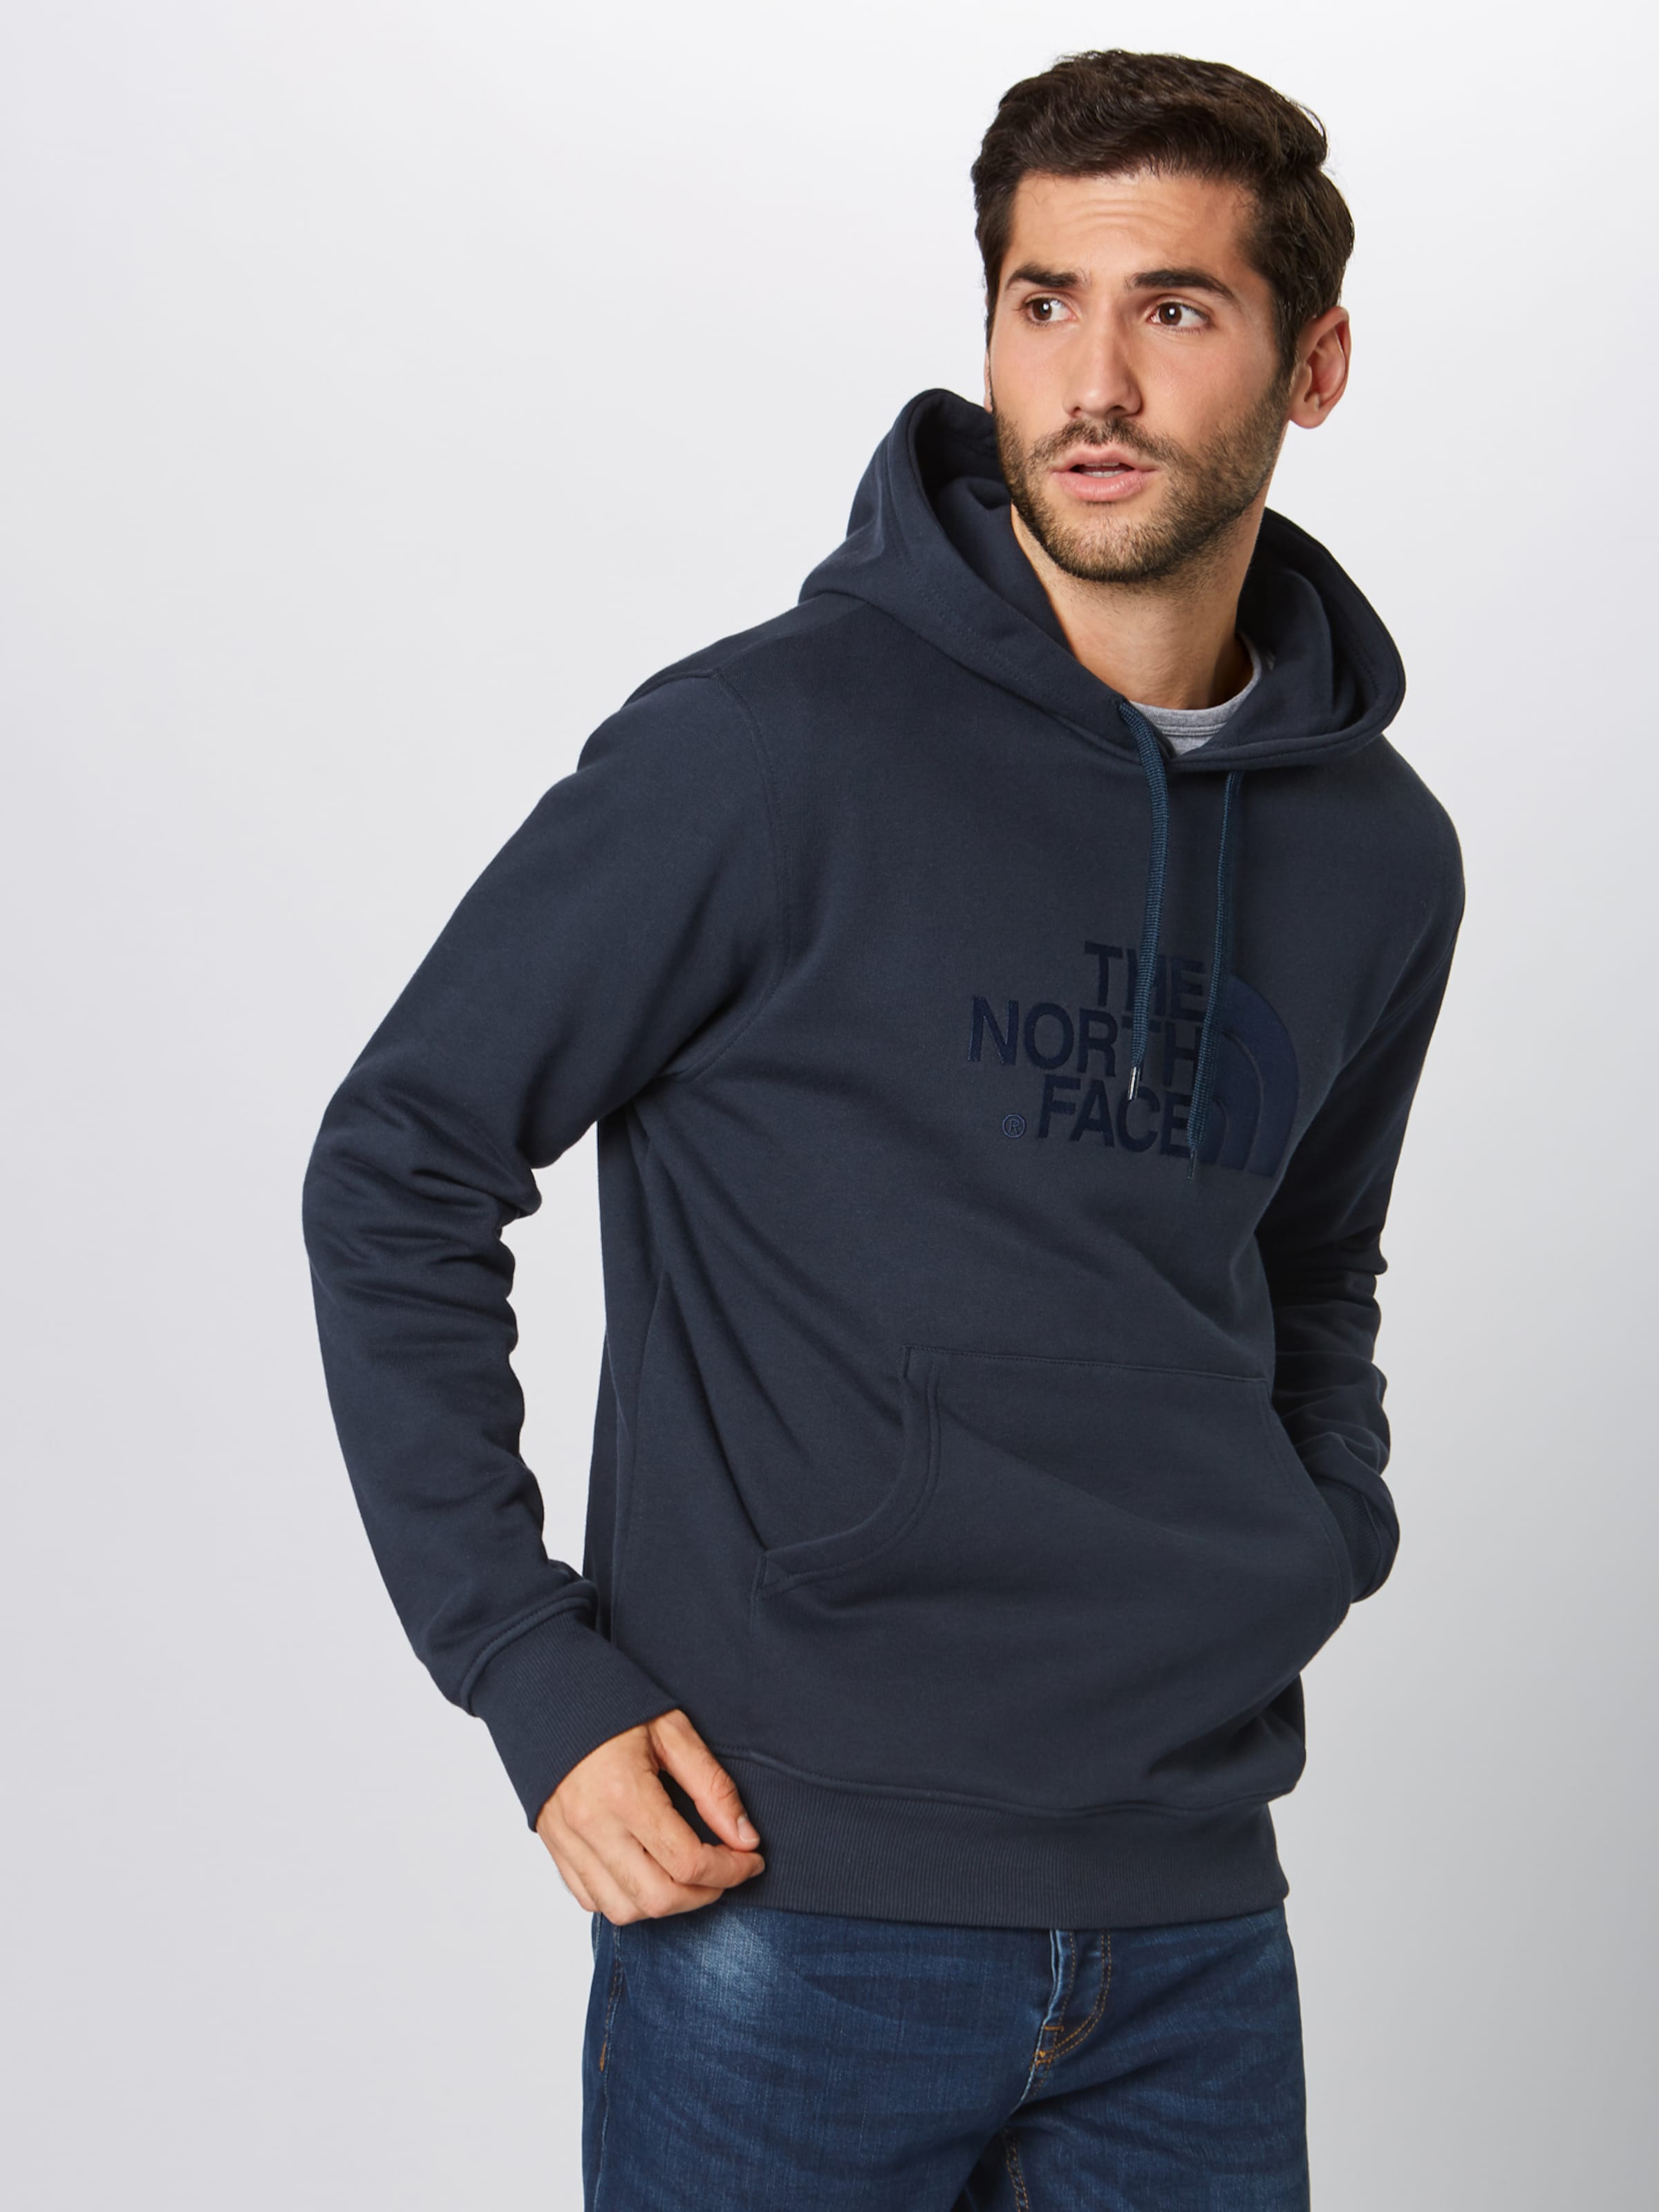 Sweatshirt In The Navy North Face 80wkOPn